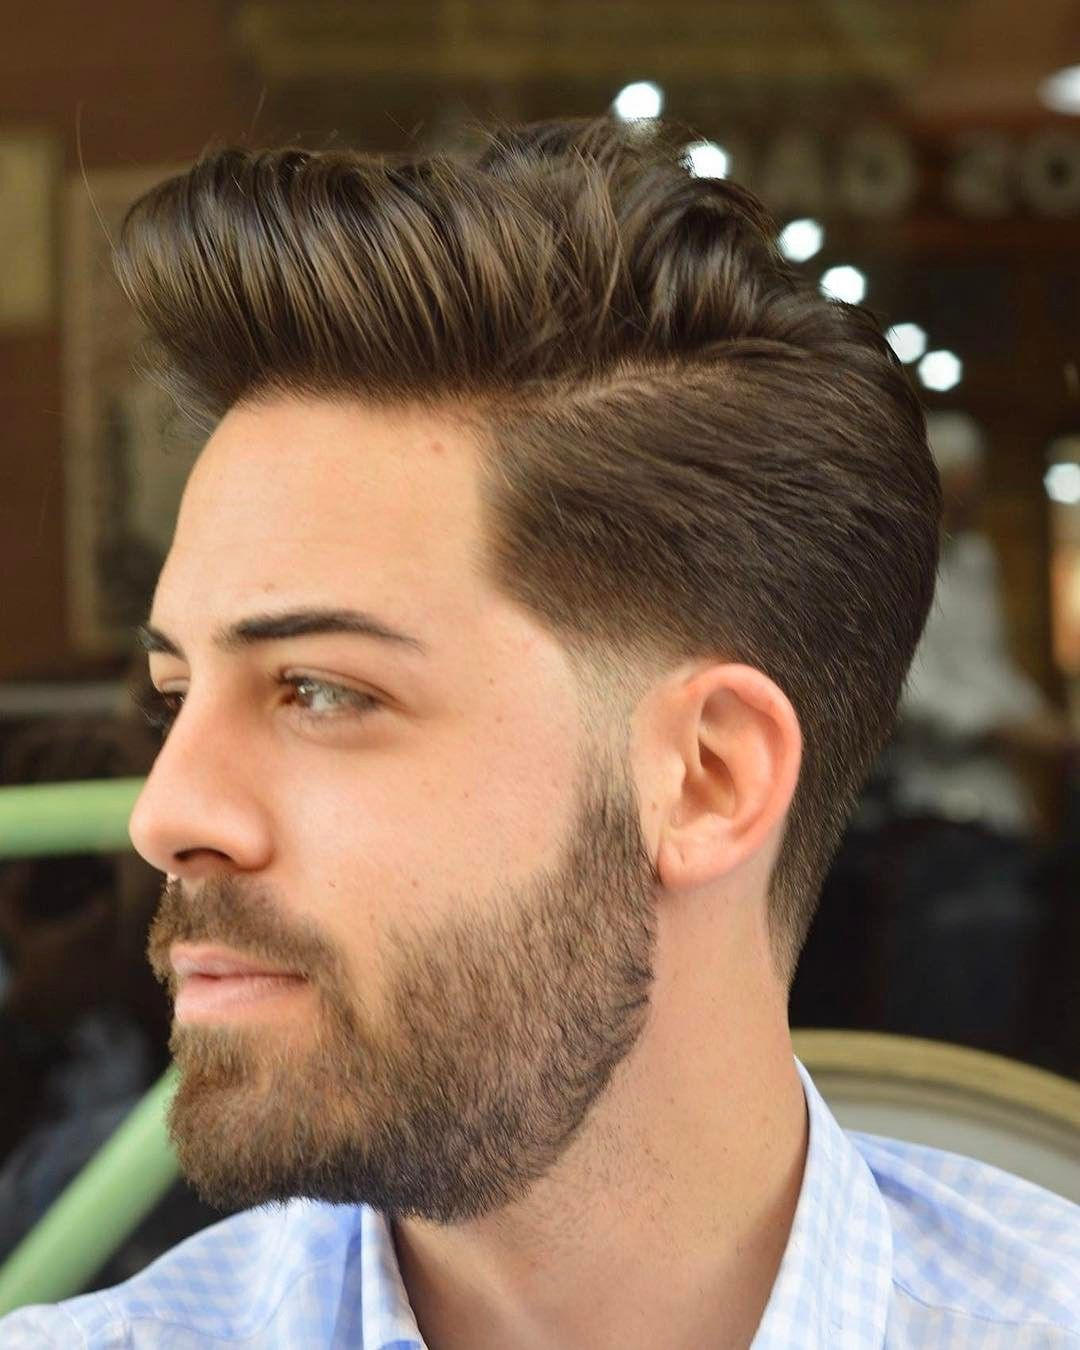 13 classic male hairstyles 2019 | men's haircuts and styles